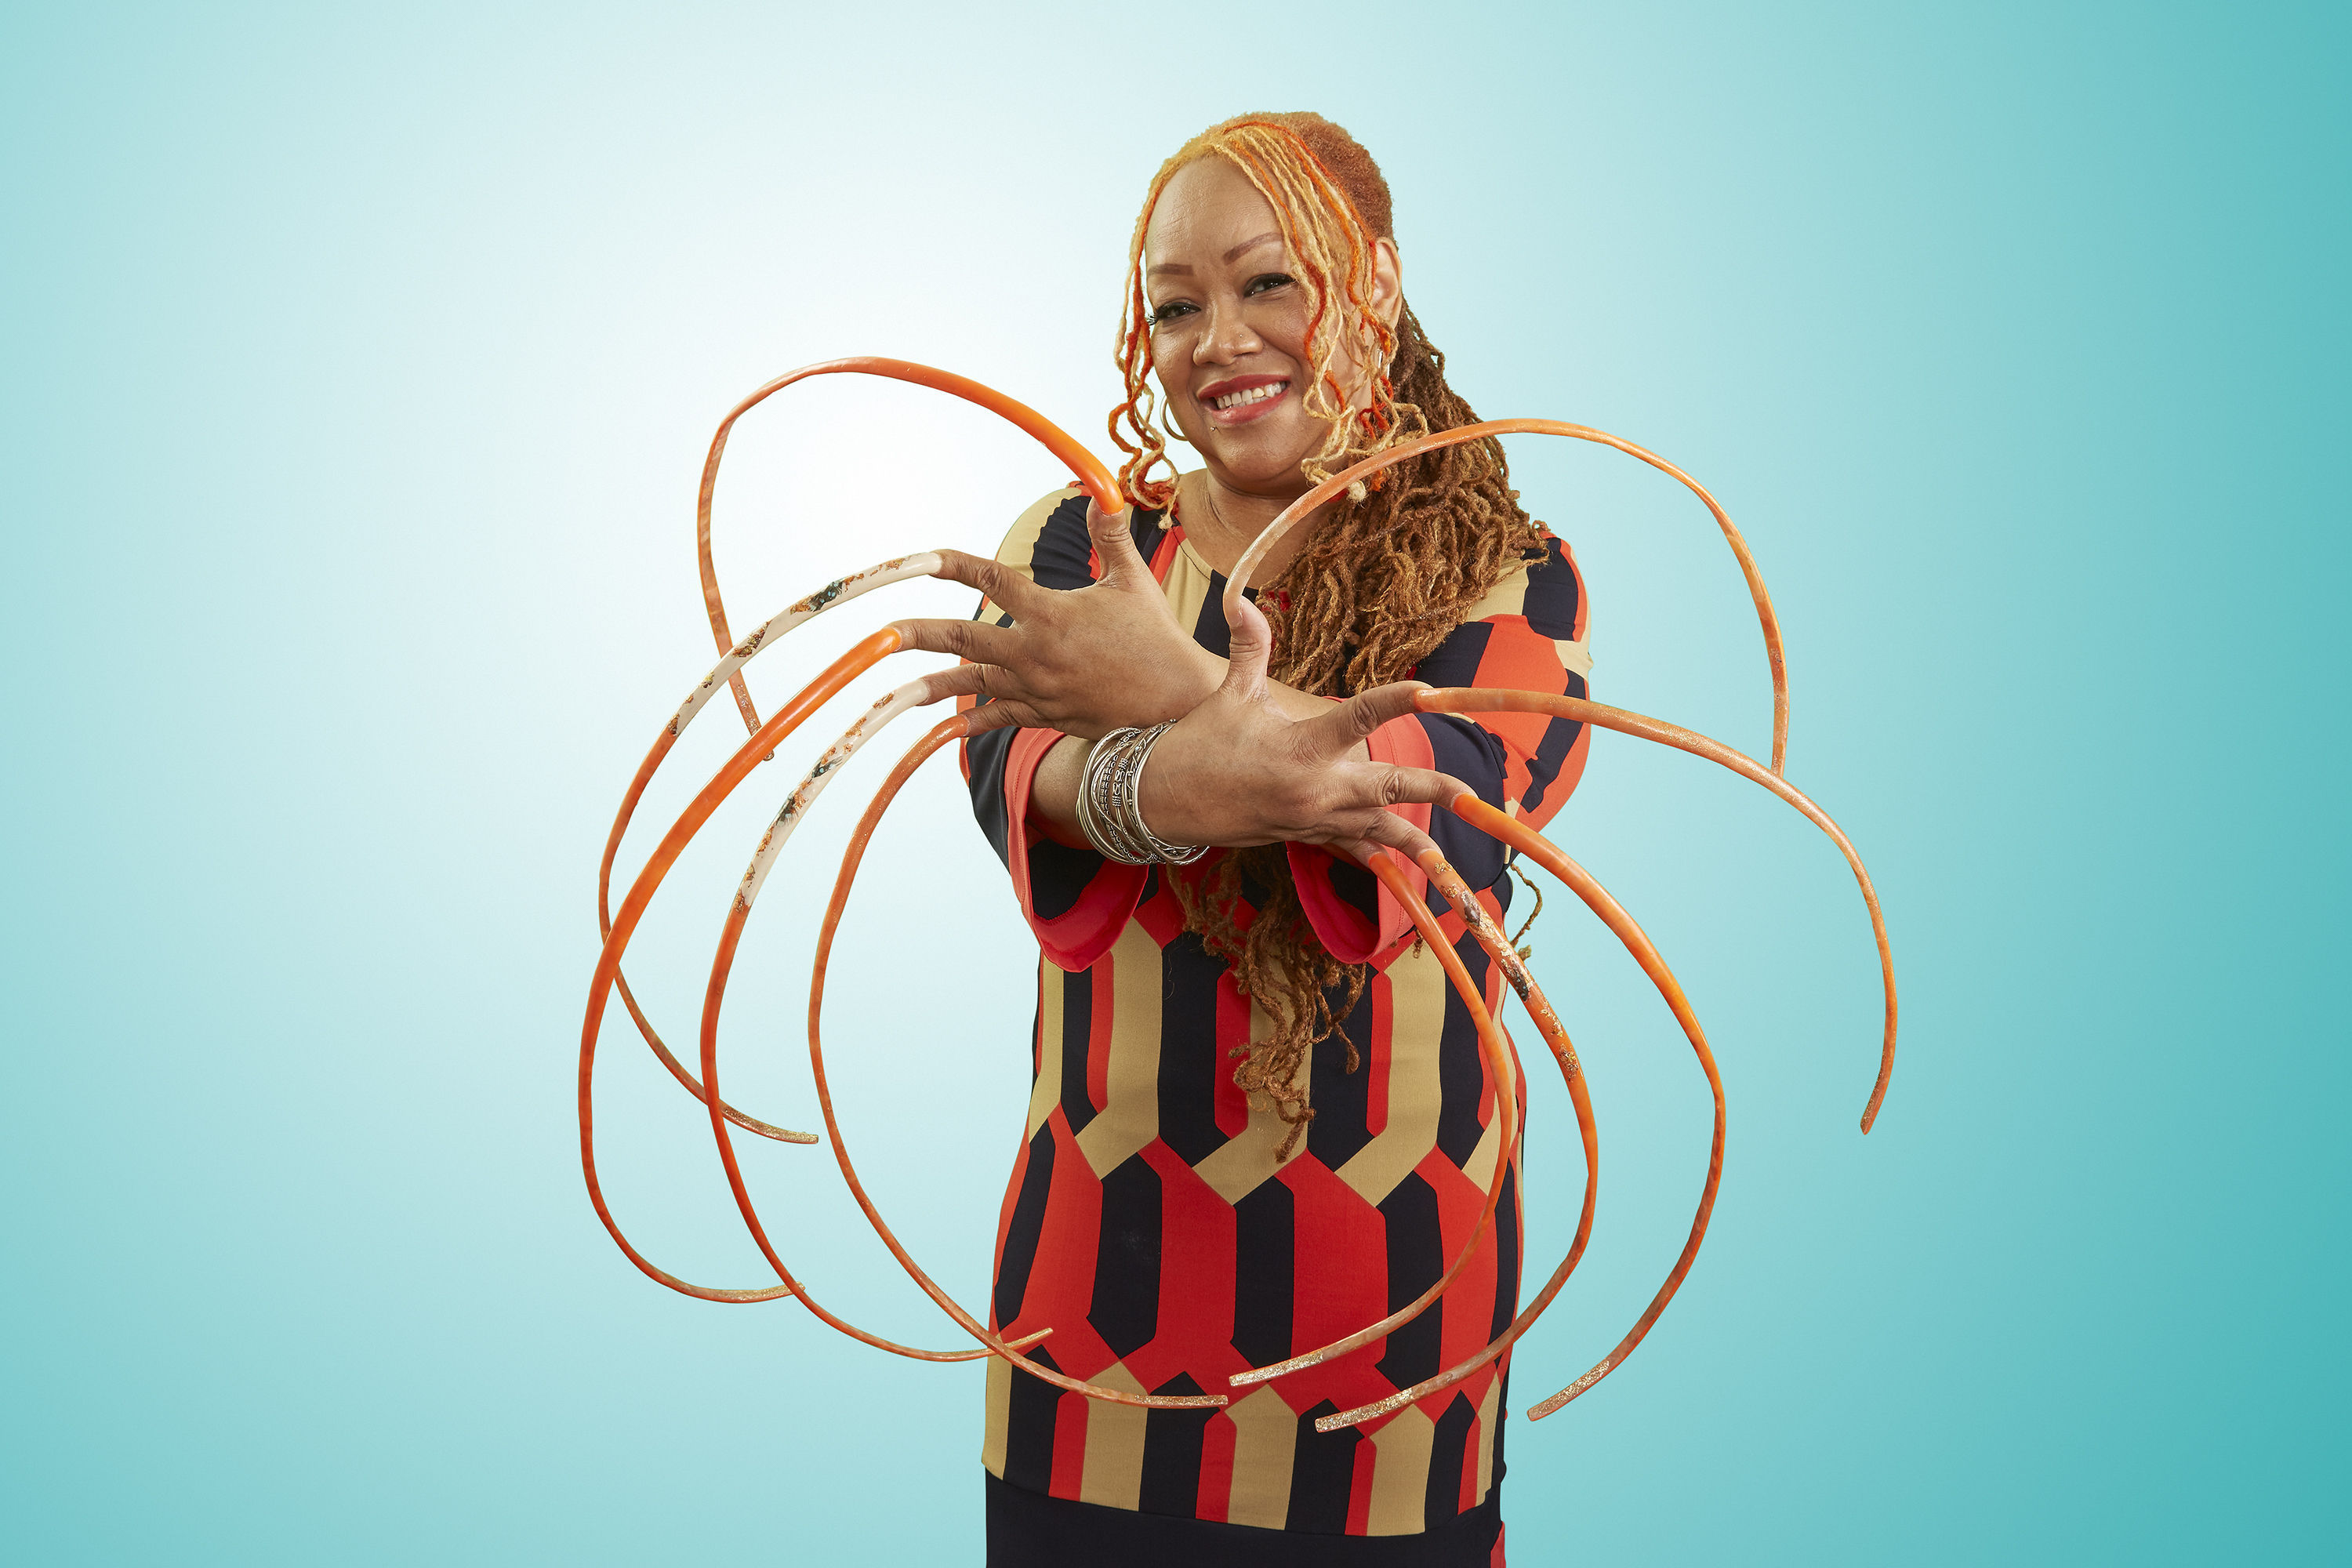 Nail artist grows world's longest fingernails